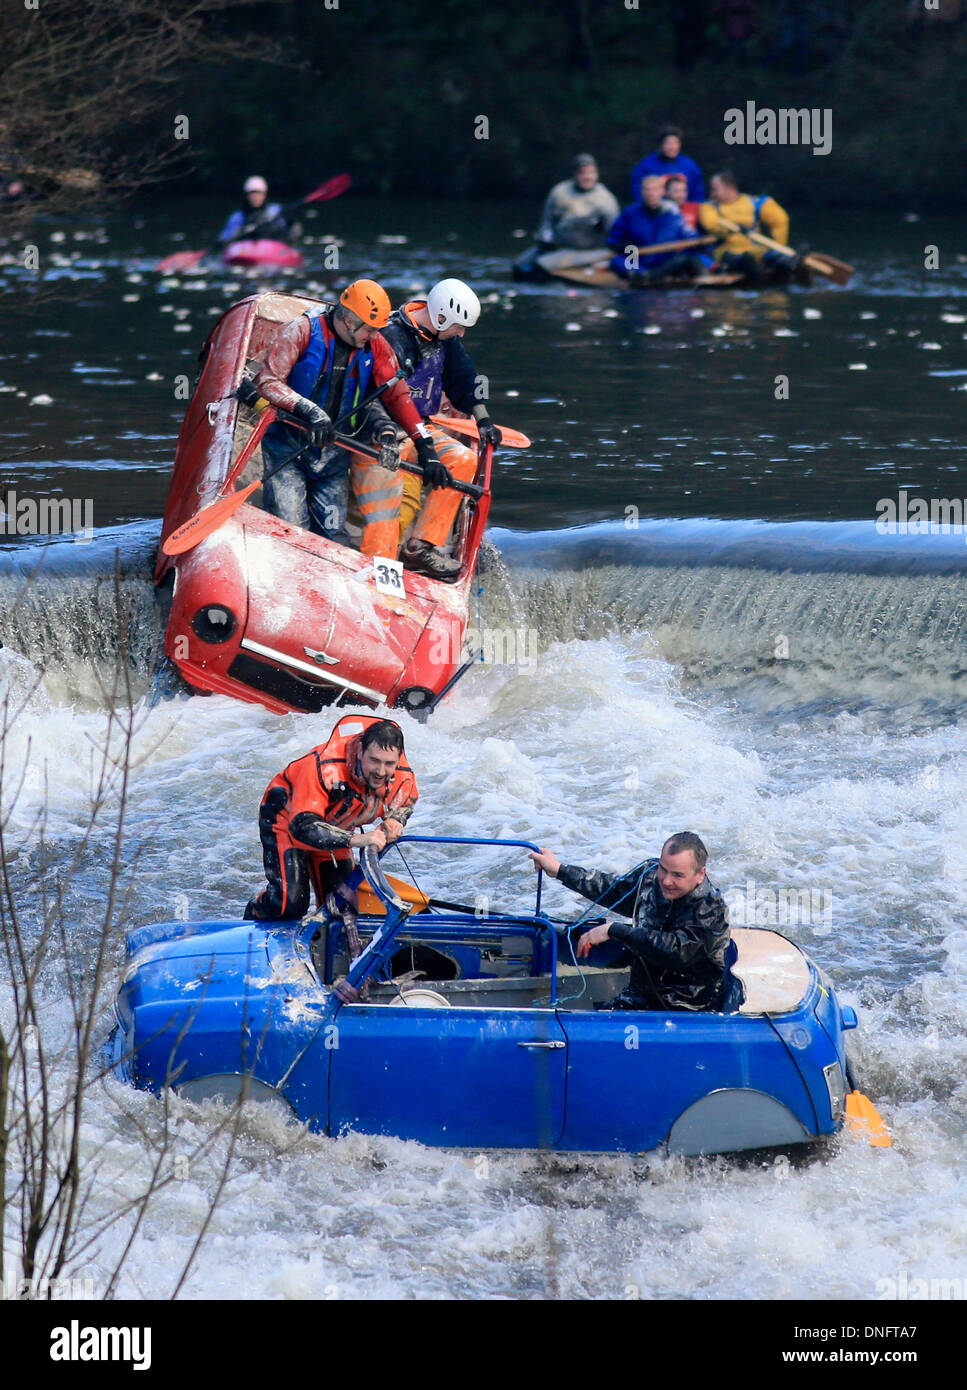 Matlock, Derbyshire, Peak District, UK . 26th Dec, 2013. Competitors take the plunge down a weir on The River Derwent as they take part in the Boxing Day Raft Race at Matlock in the Derbyshire Peak District. Credit:  Joanne Roberts/Alamy Live News - Stock Image